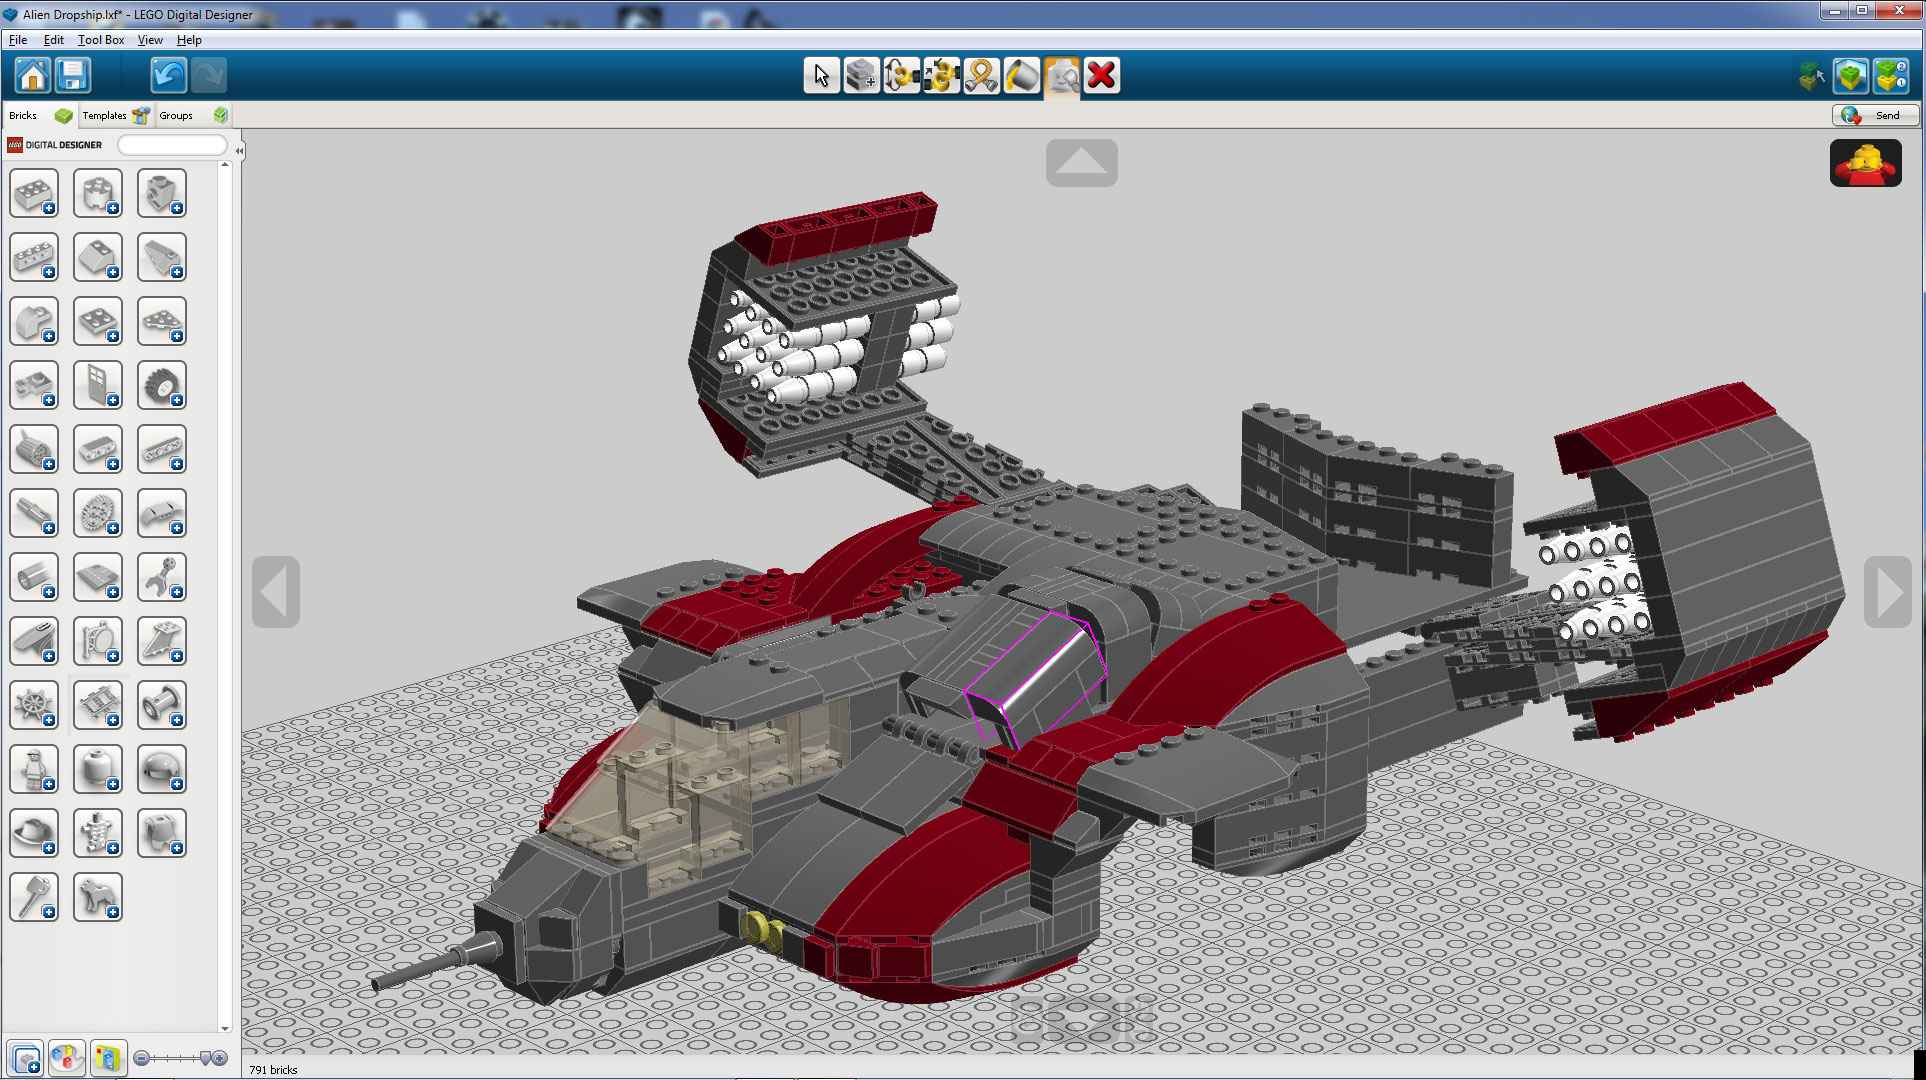 Building of a lego dropship moc part 1 lego digital for Lego digital designer templates